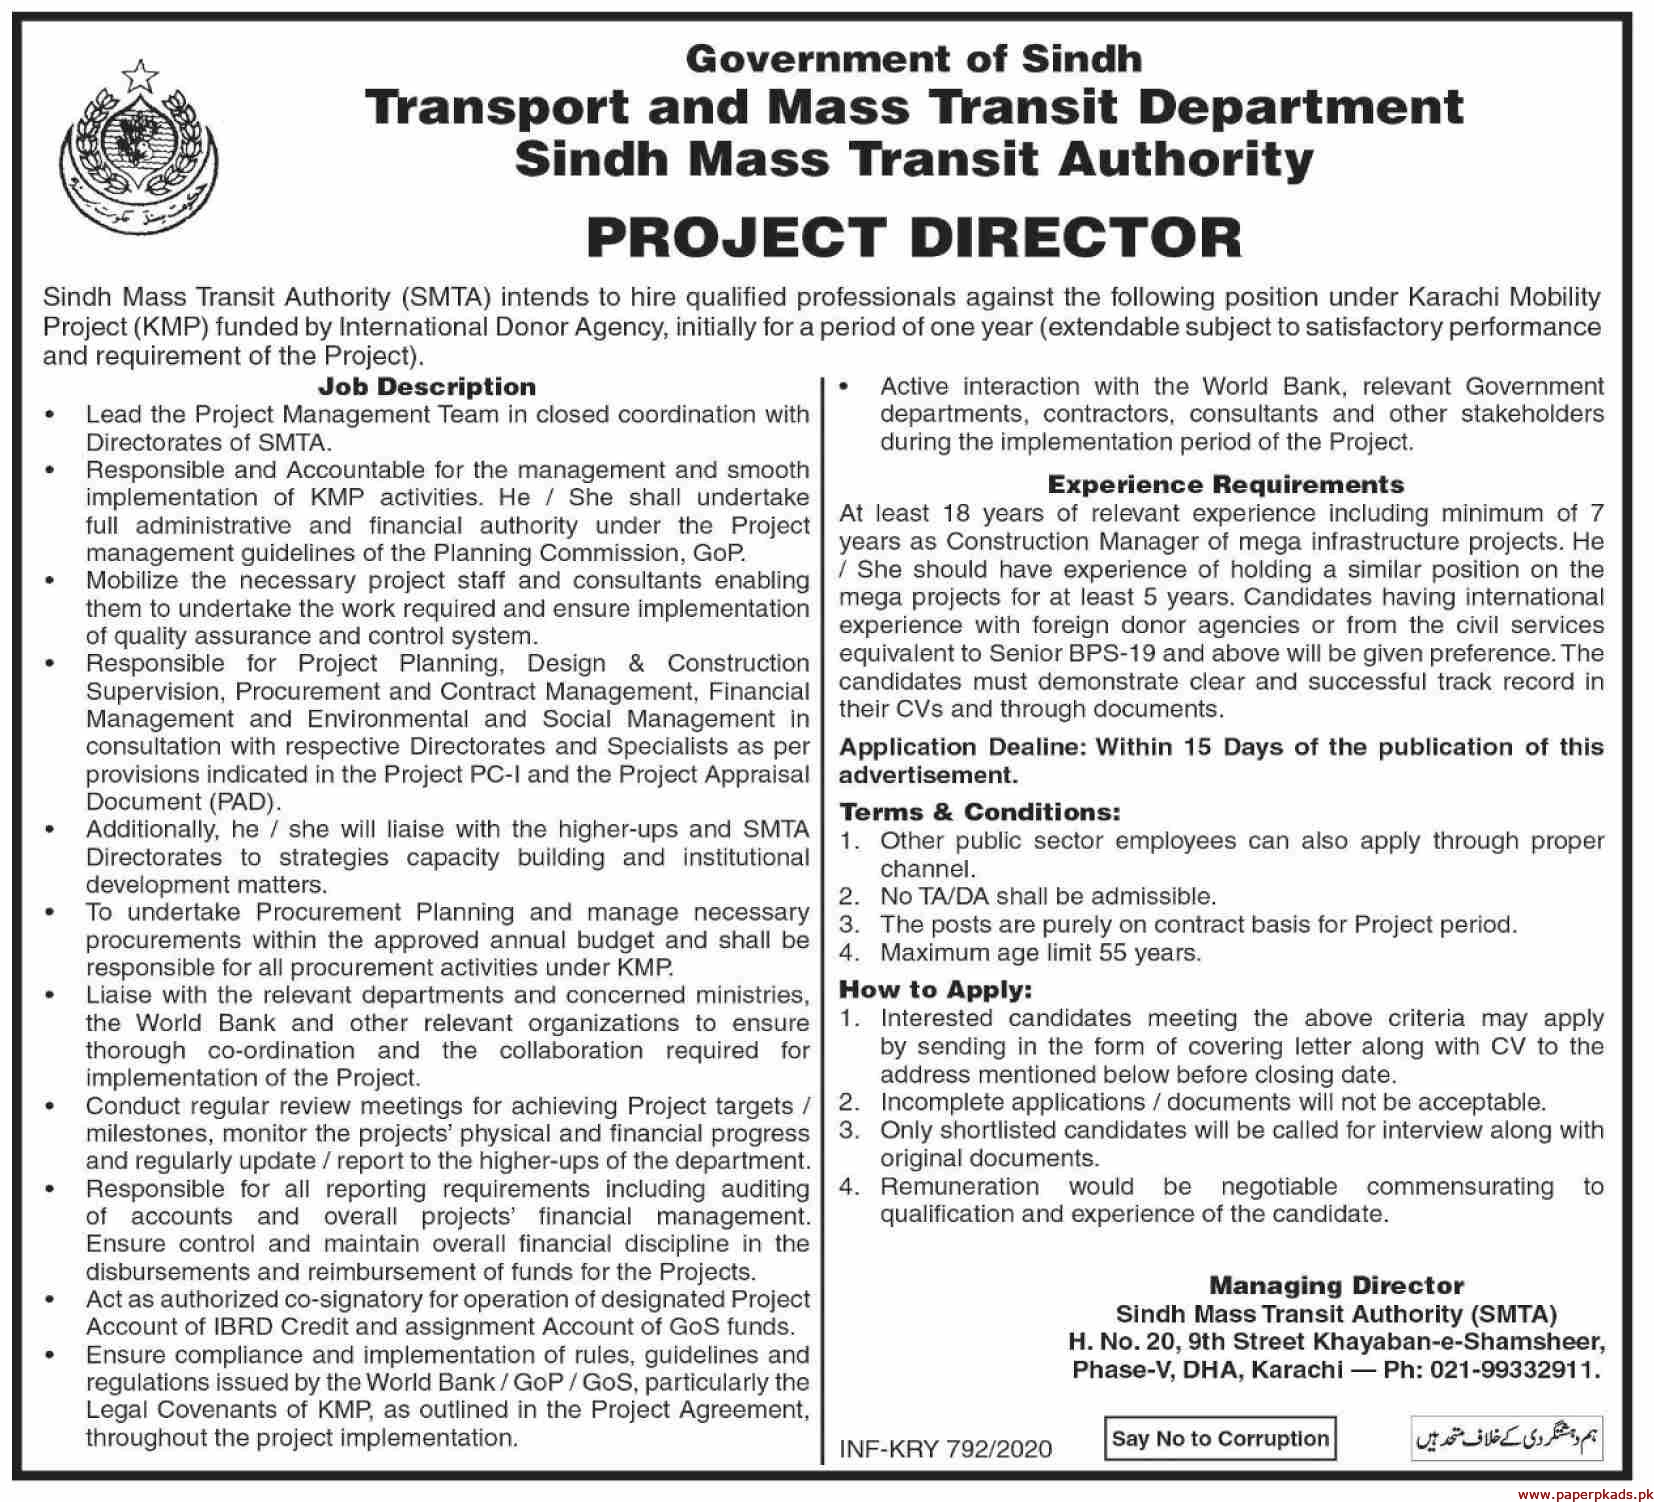 Government of Sindh Transport and Mass Transit Department Sindh Mass Transit Authority Jobs 2020 Latest